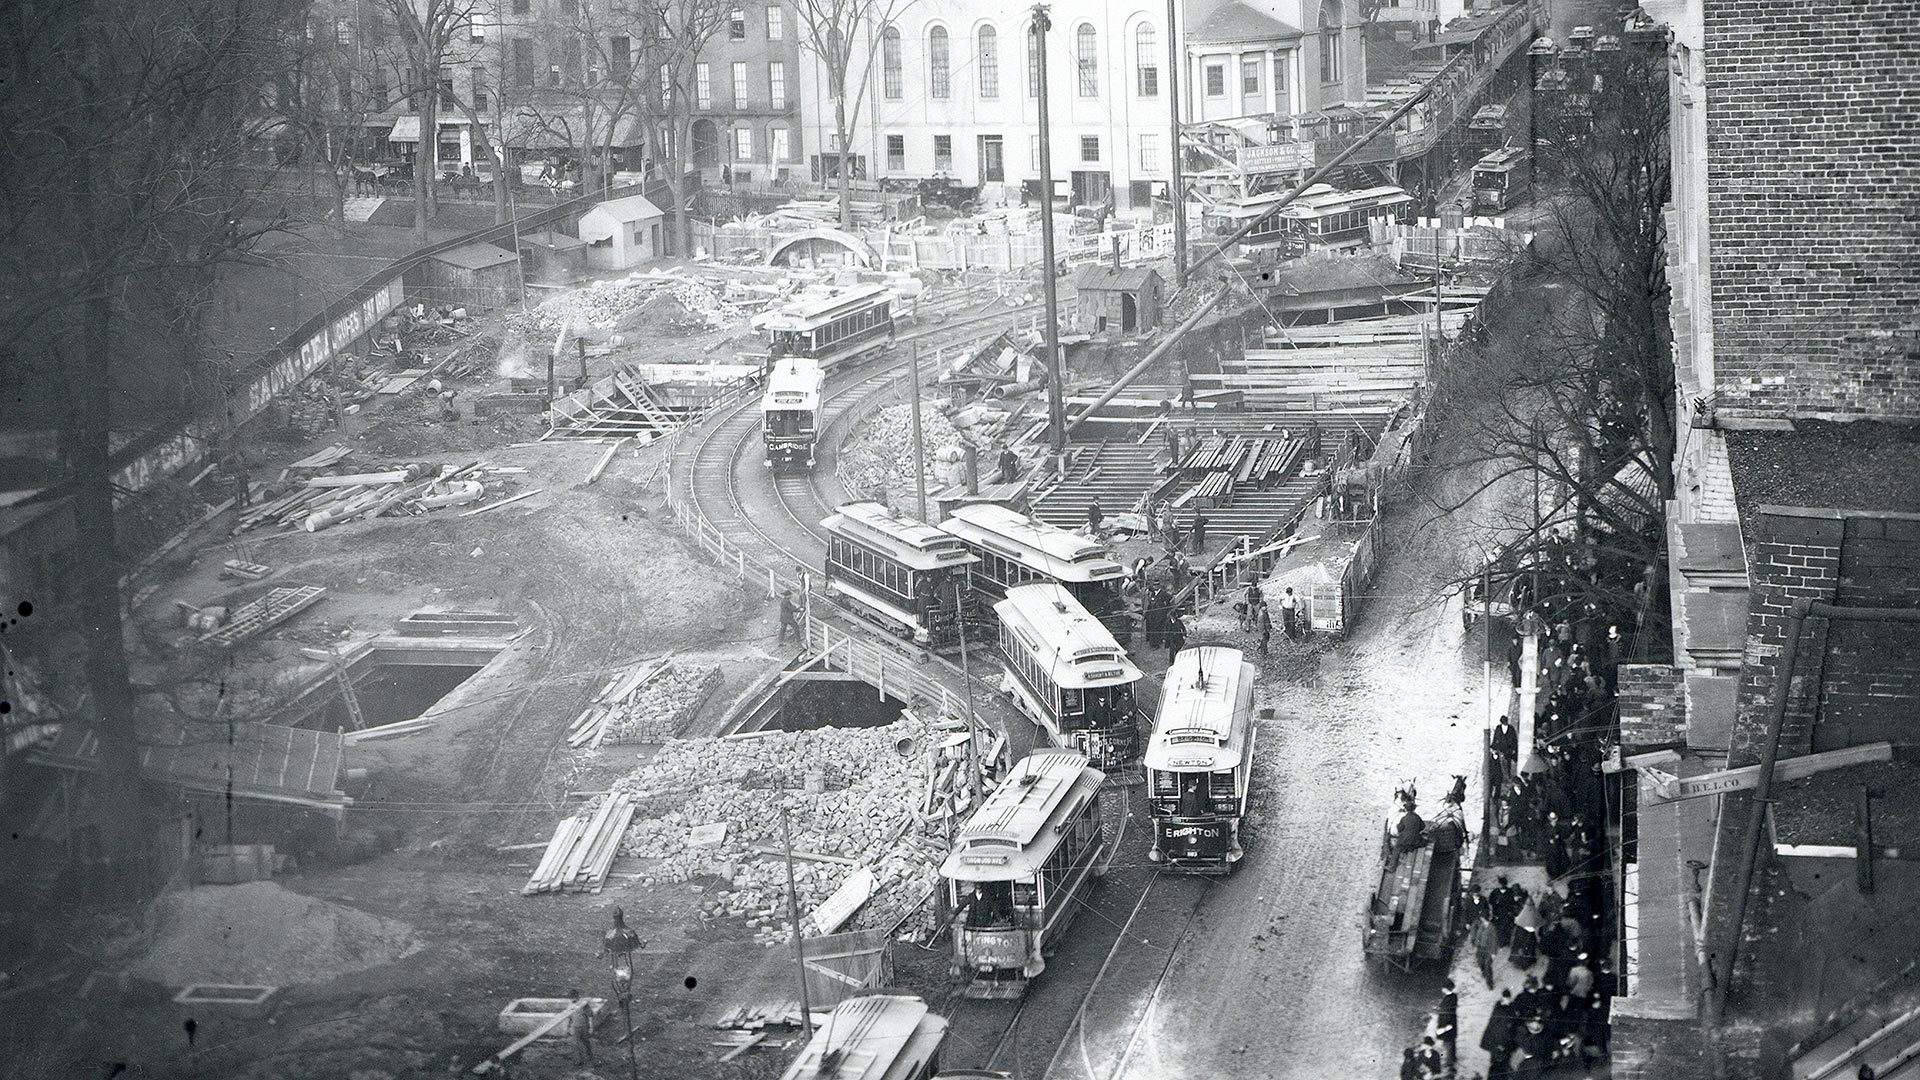 Birdseye view of construction at Tremont and Park Streets (November 1896)